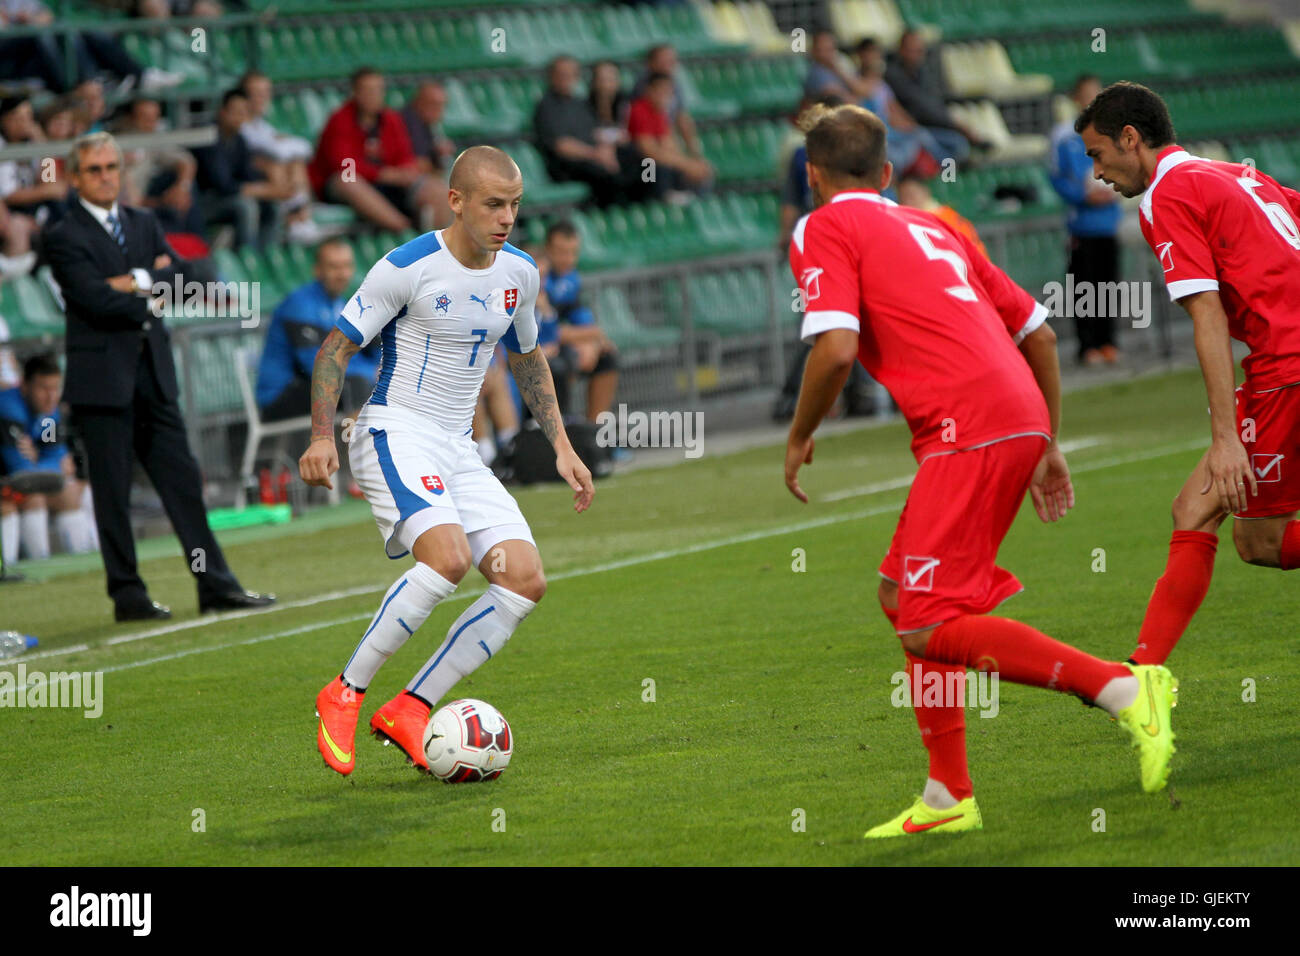 Slovakia's Vladimir Weiss (L) in action with Malta defenders during the friendly football match Slovakia vs Malta - Stock Image